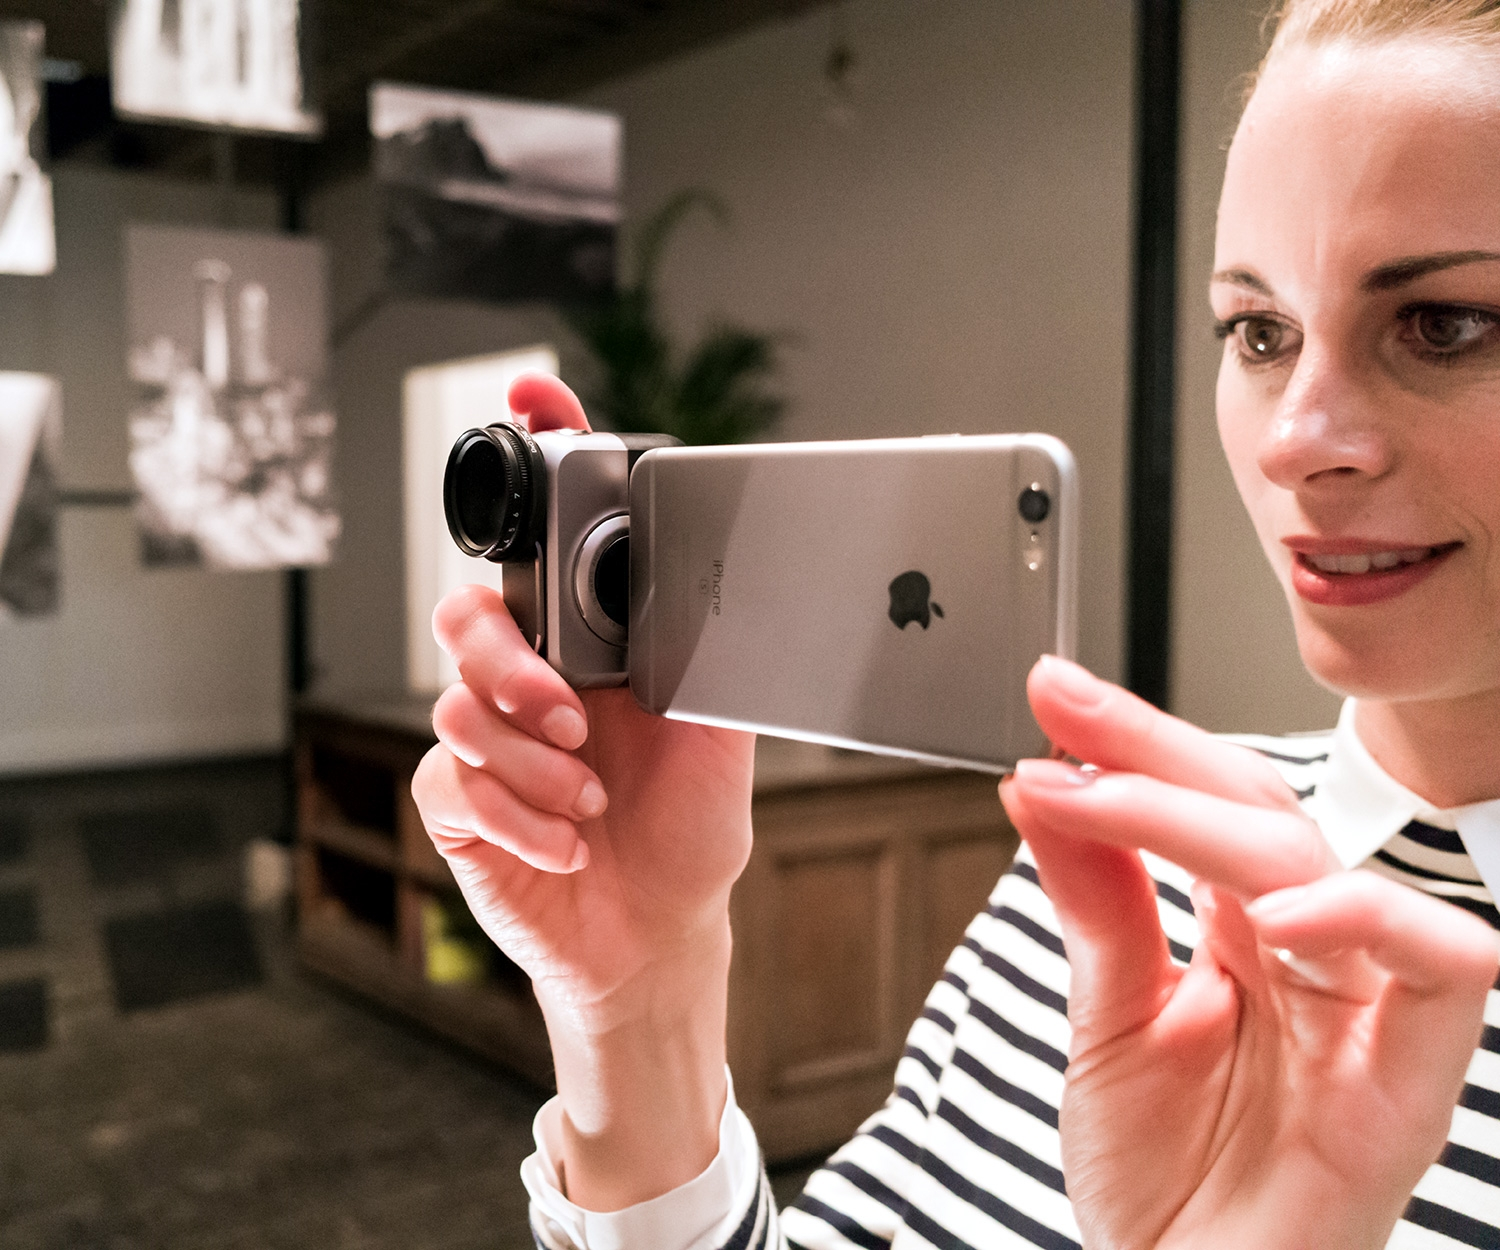 The unique DxO One plug-in camera for your iPhone gains features, lenses and more